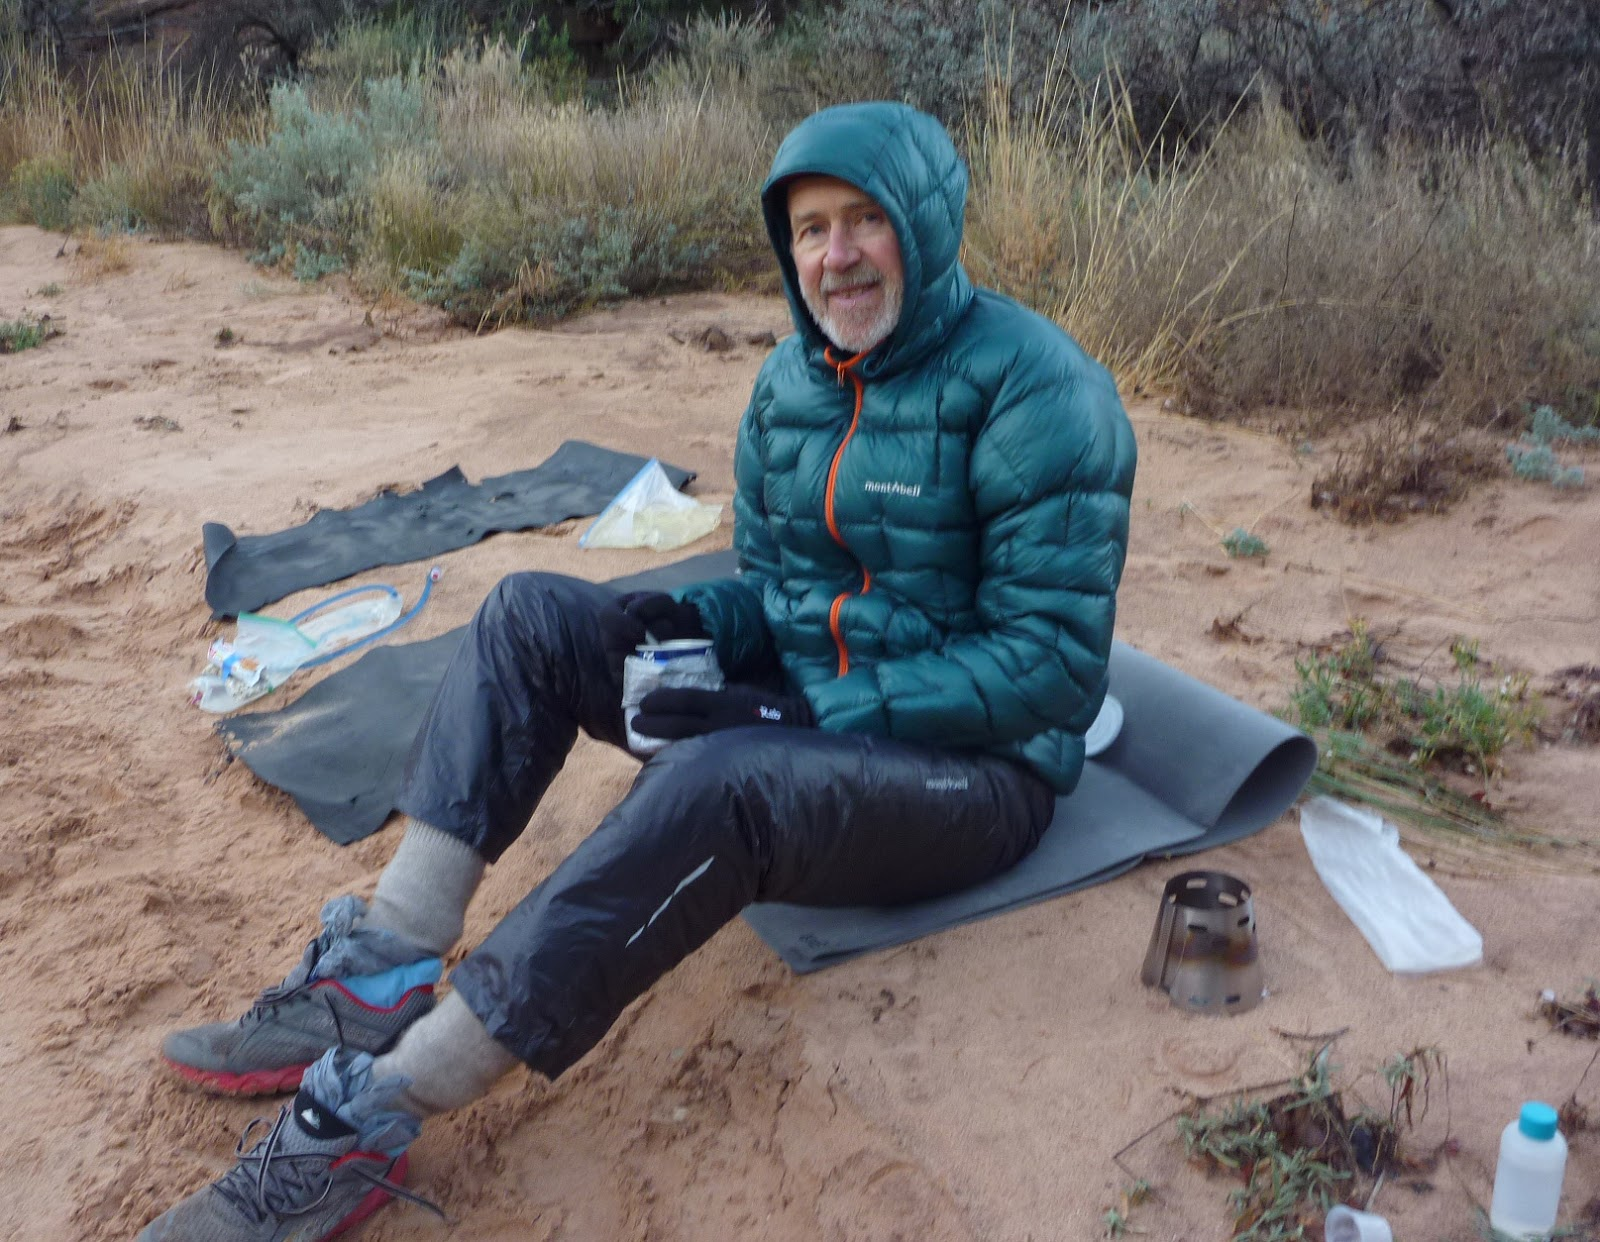 d7c6256e9ed I tested the Plasma 1000 Alpine Down Parka on three backpacking trips in  the Southwestern Colorado mountains and Southern Utah canyonlands.